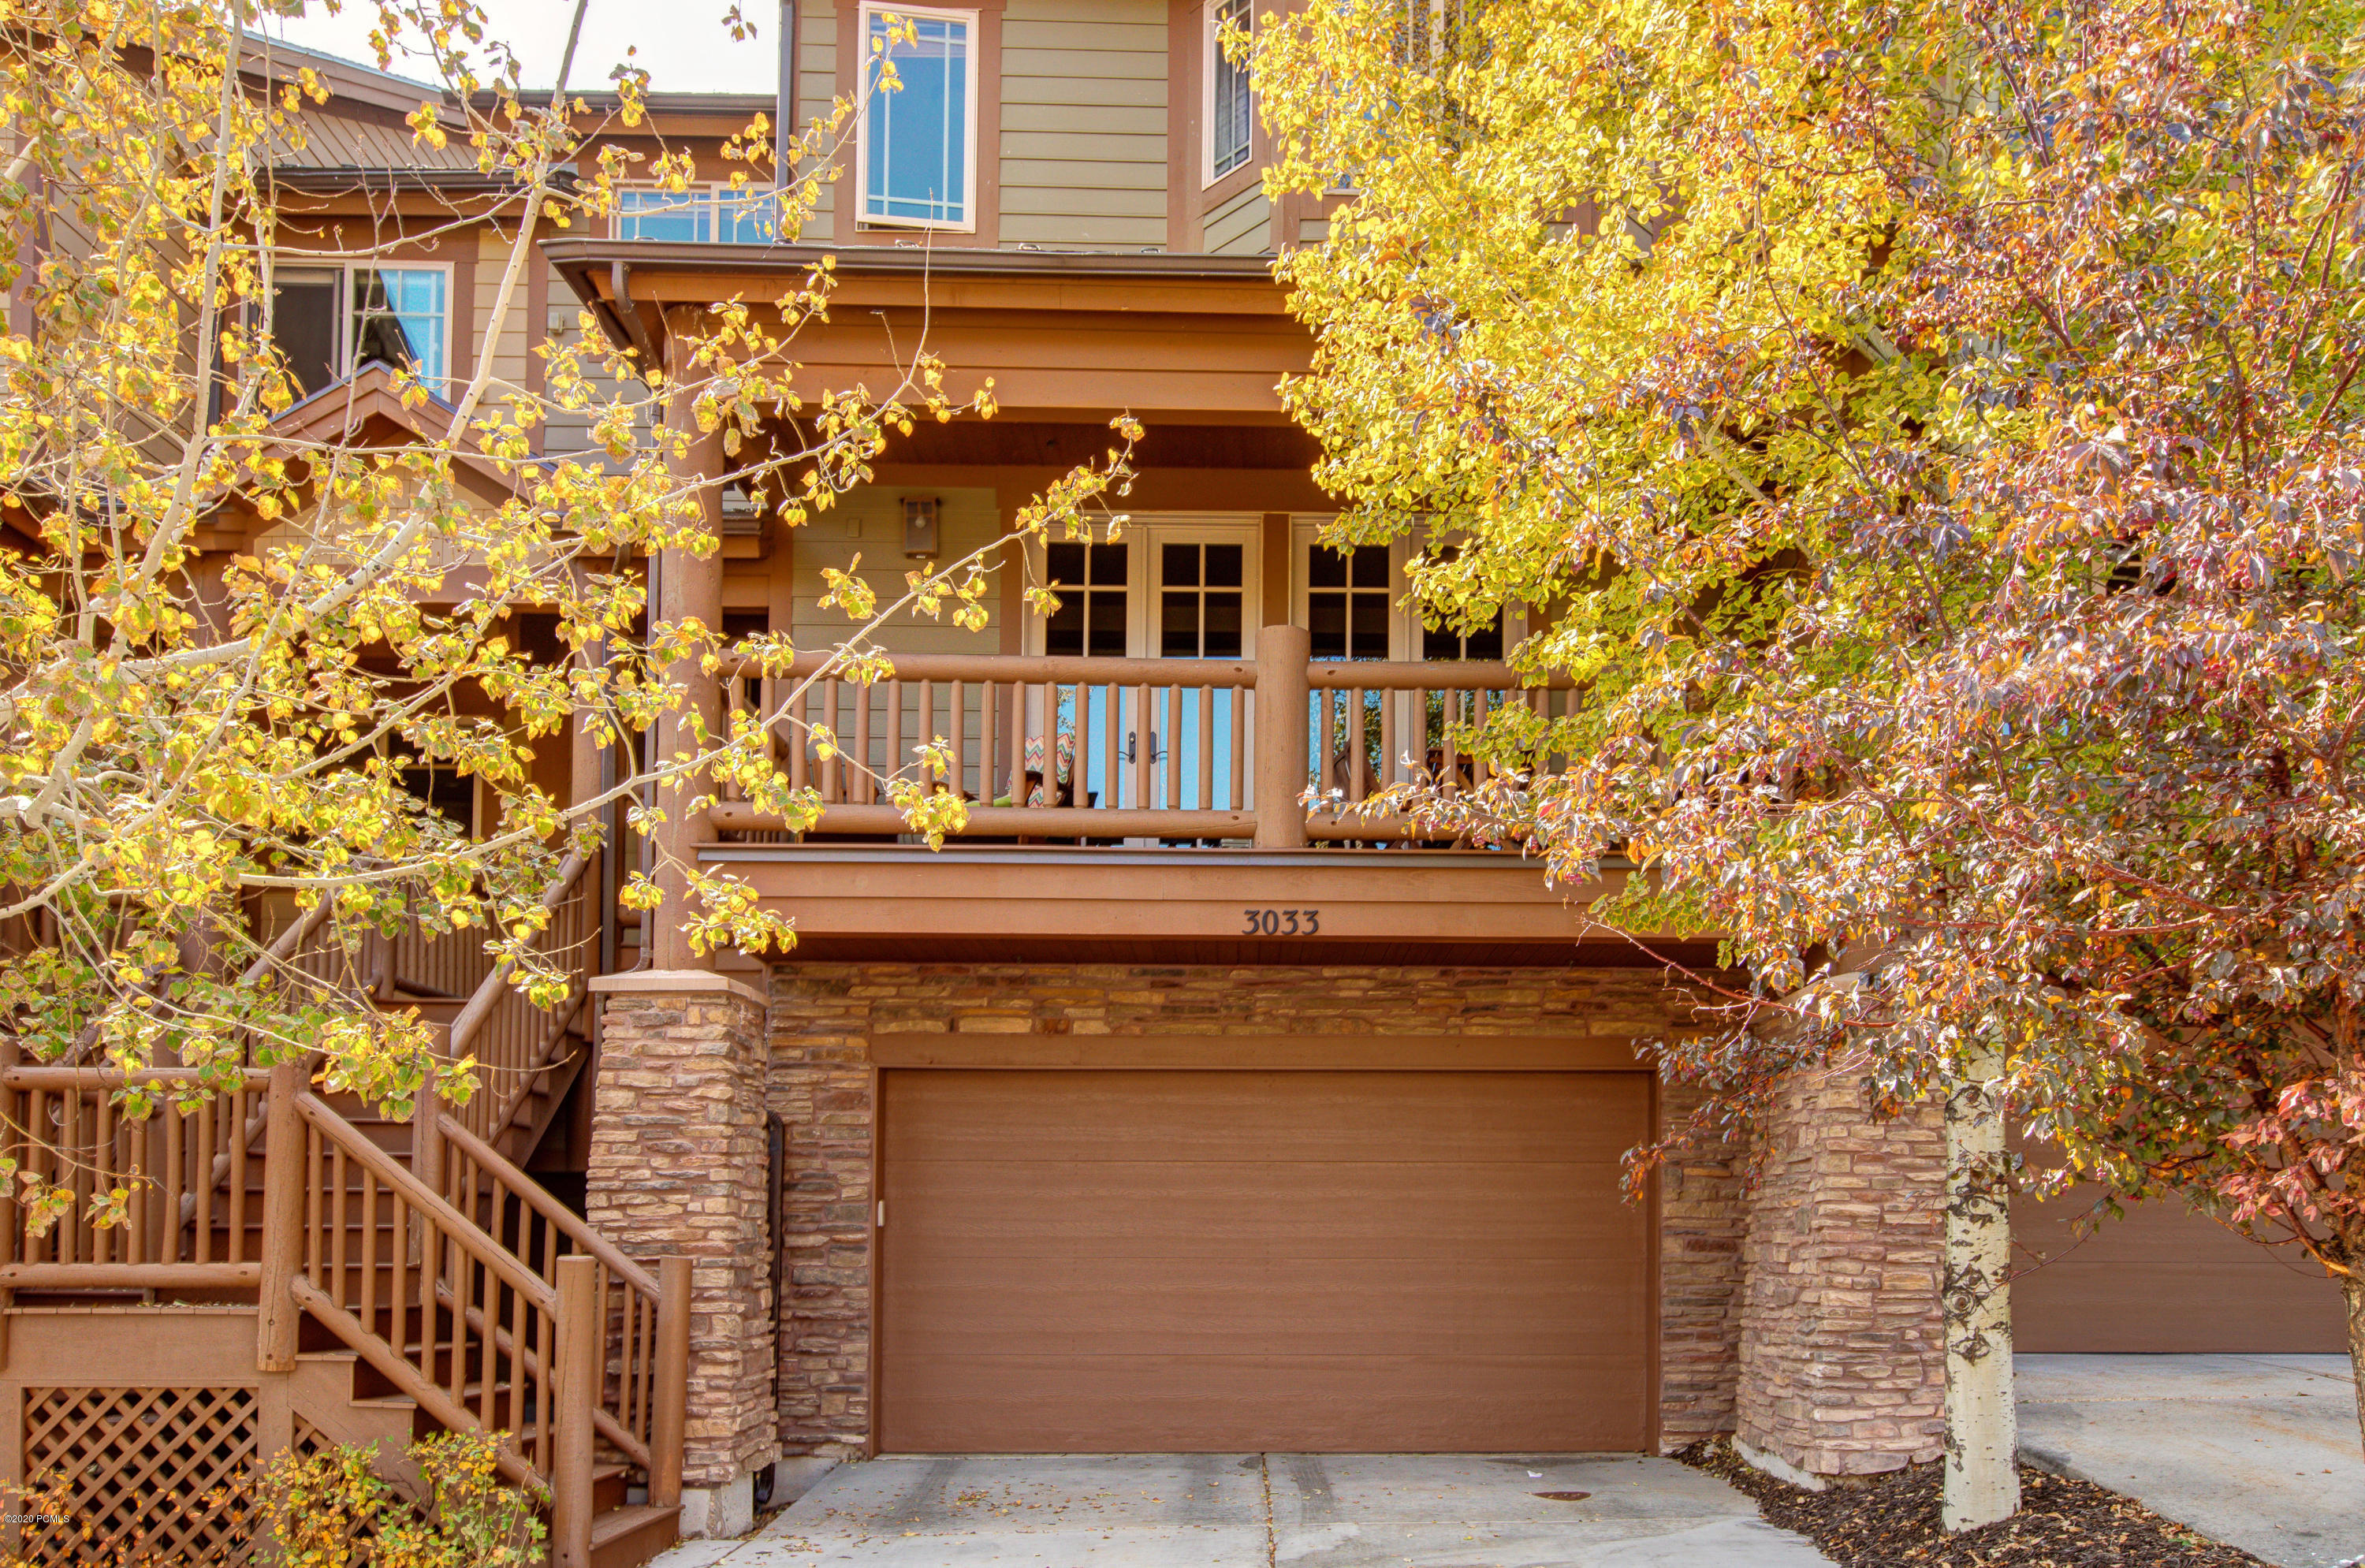 3033 Canyon Links Drive, Park City, Utah 84098, 4 Bedrooms Bedrooms, ,4 BathroomsBathrooms,Condominium,For Sale,Canyon Links,12003863